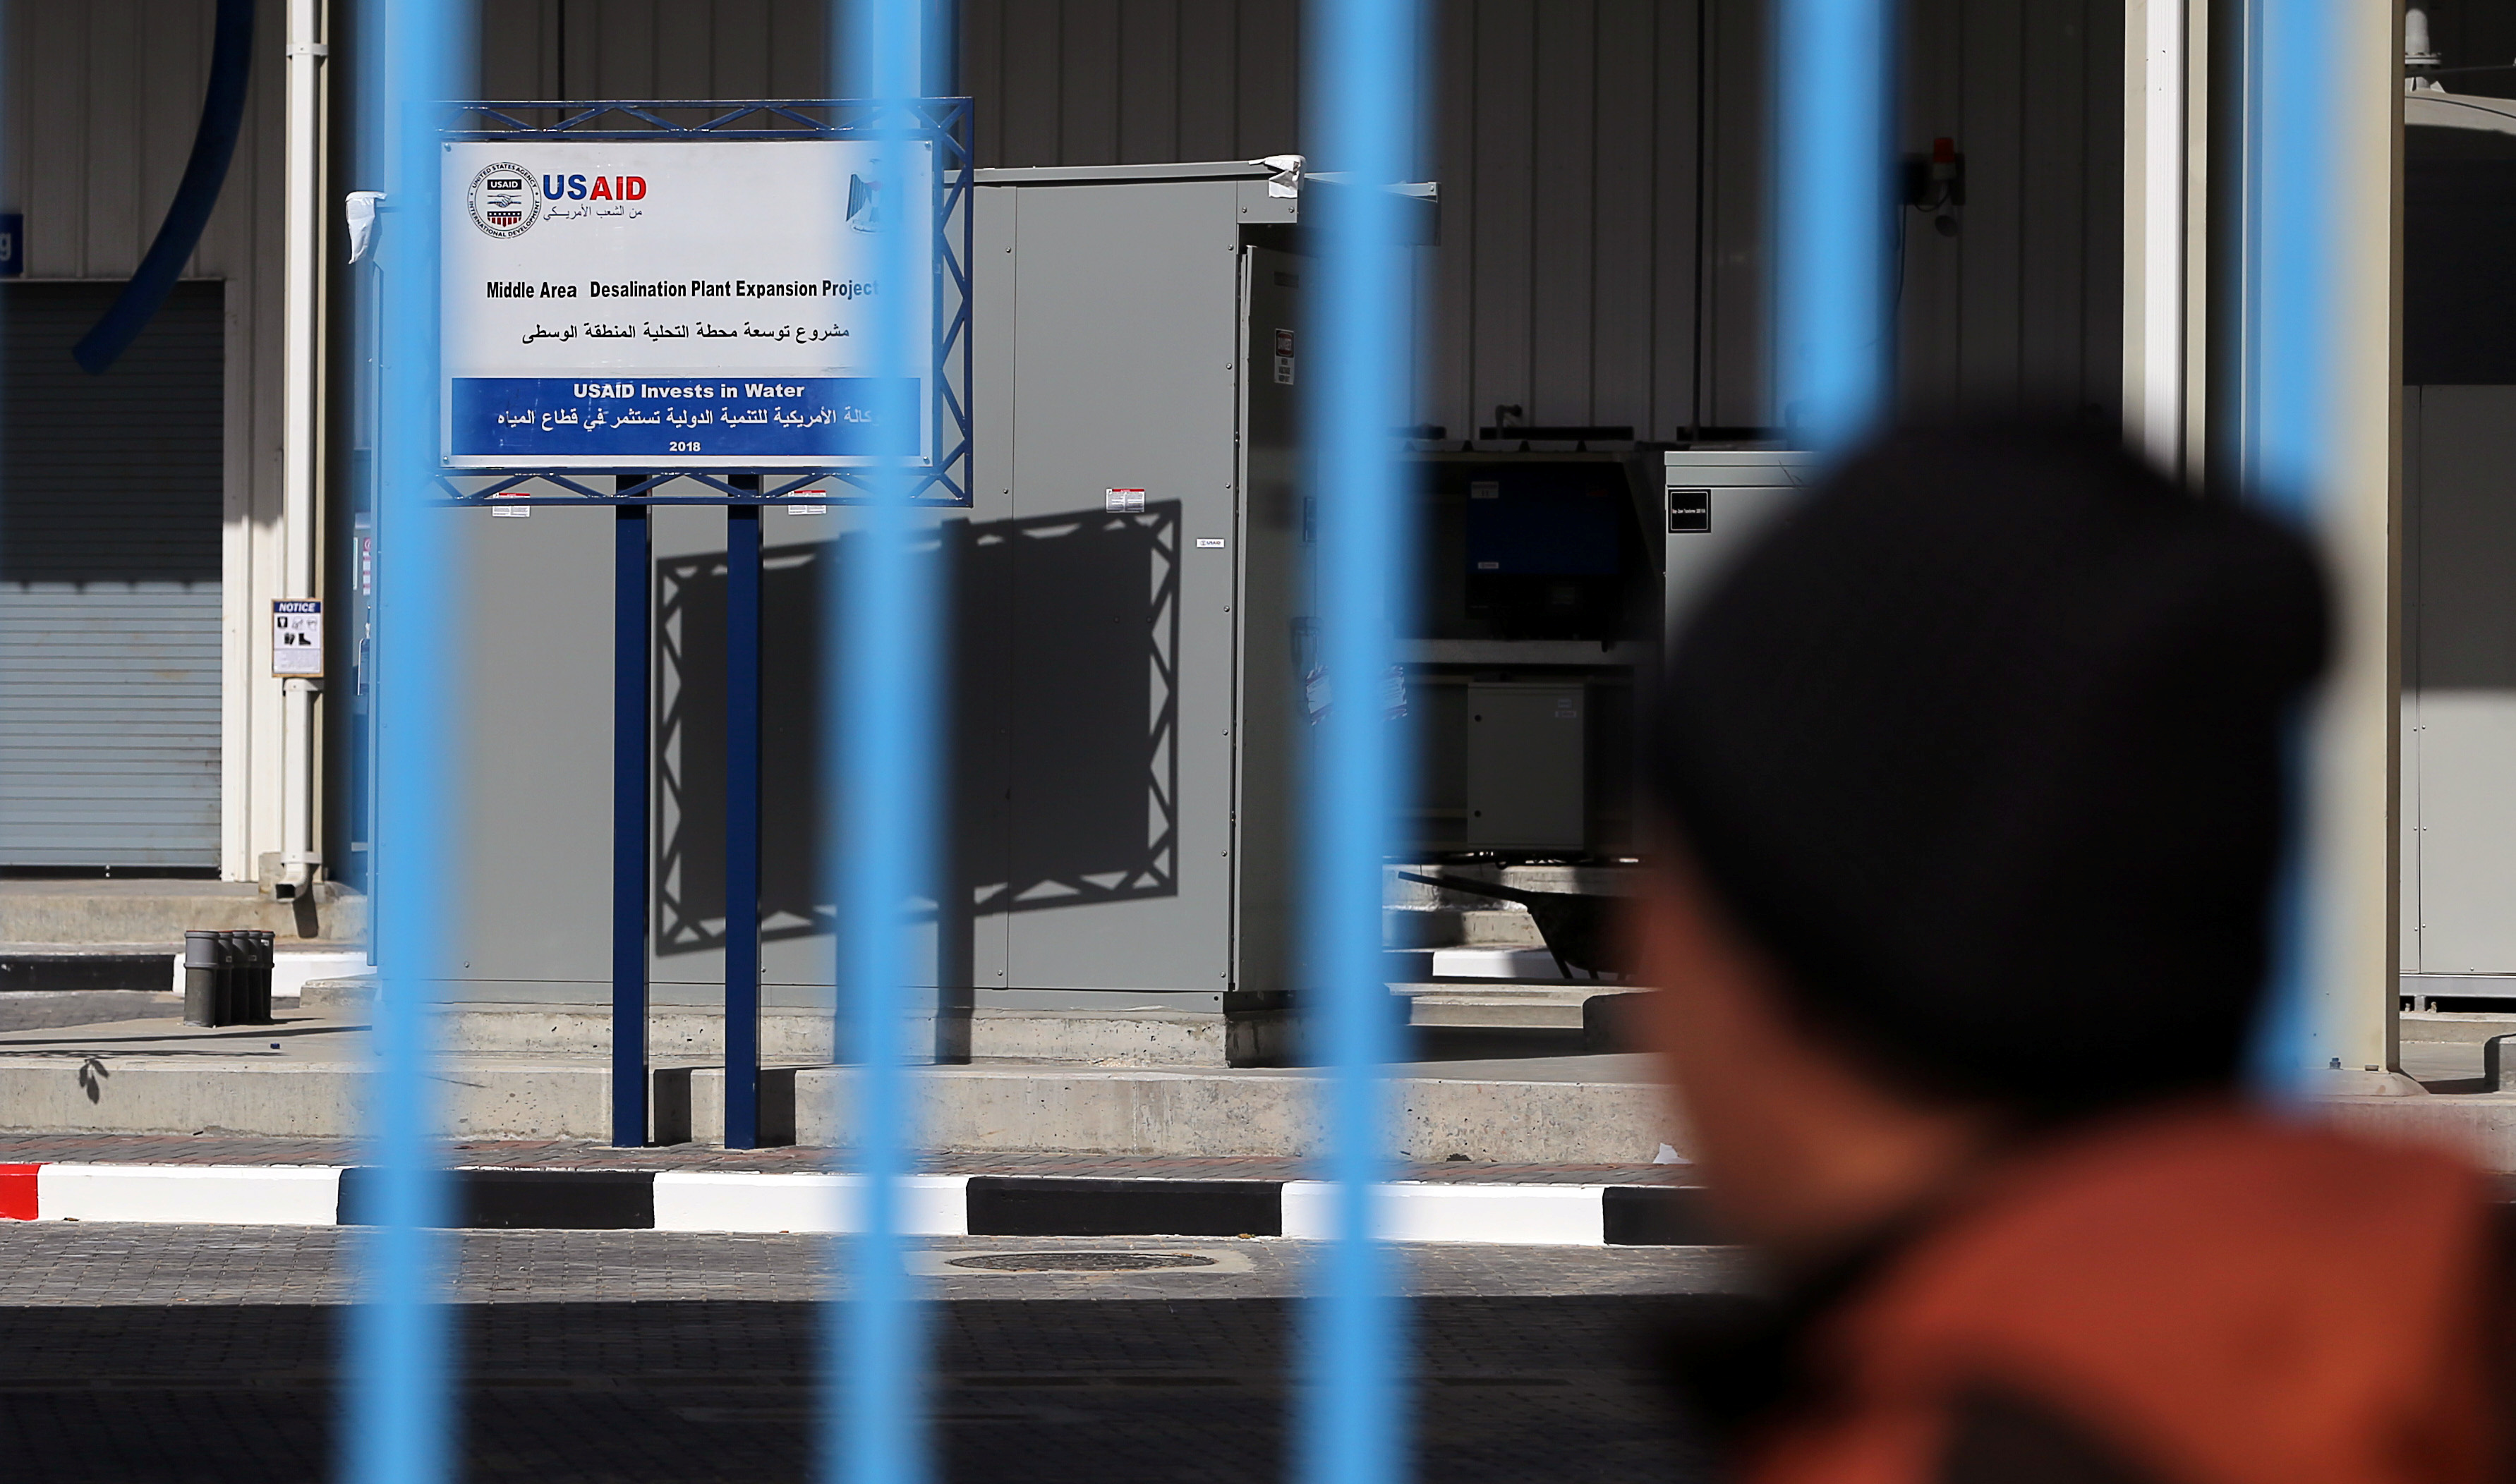 A sign of the U.S. Agency for International Development (USAID) is seen at a water desalination plant in the central Gaza Strip, Feb. 1, 2019.